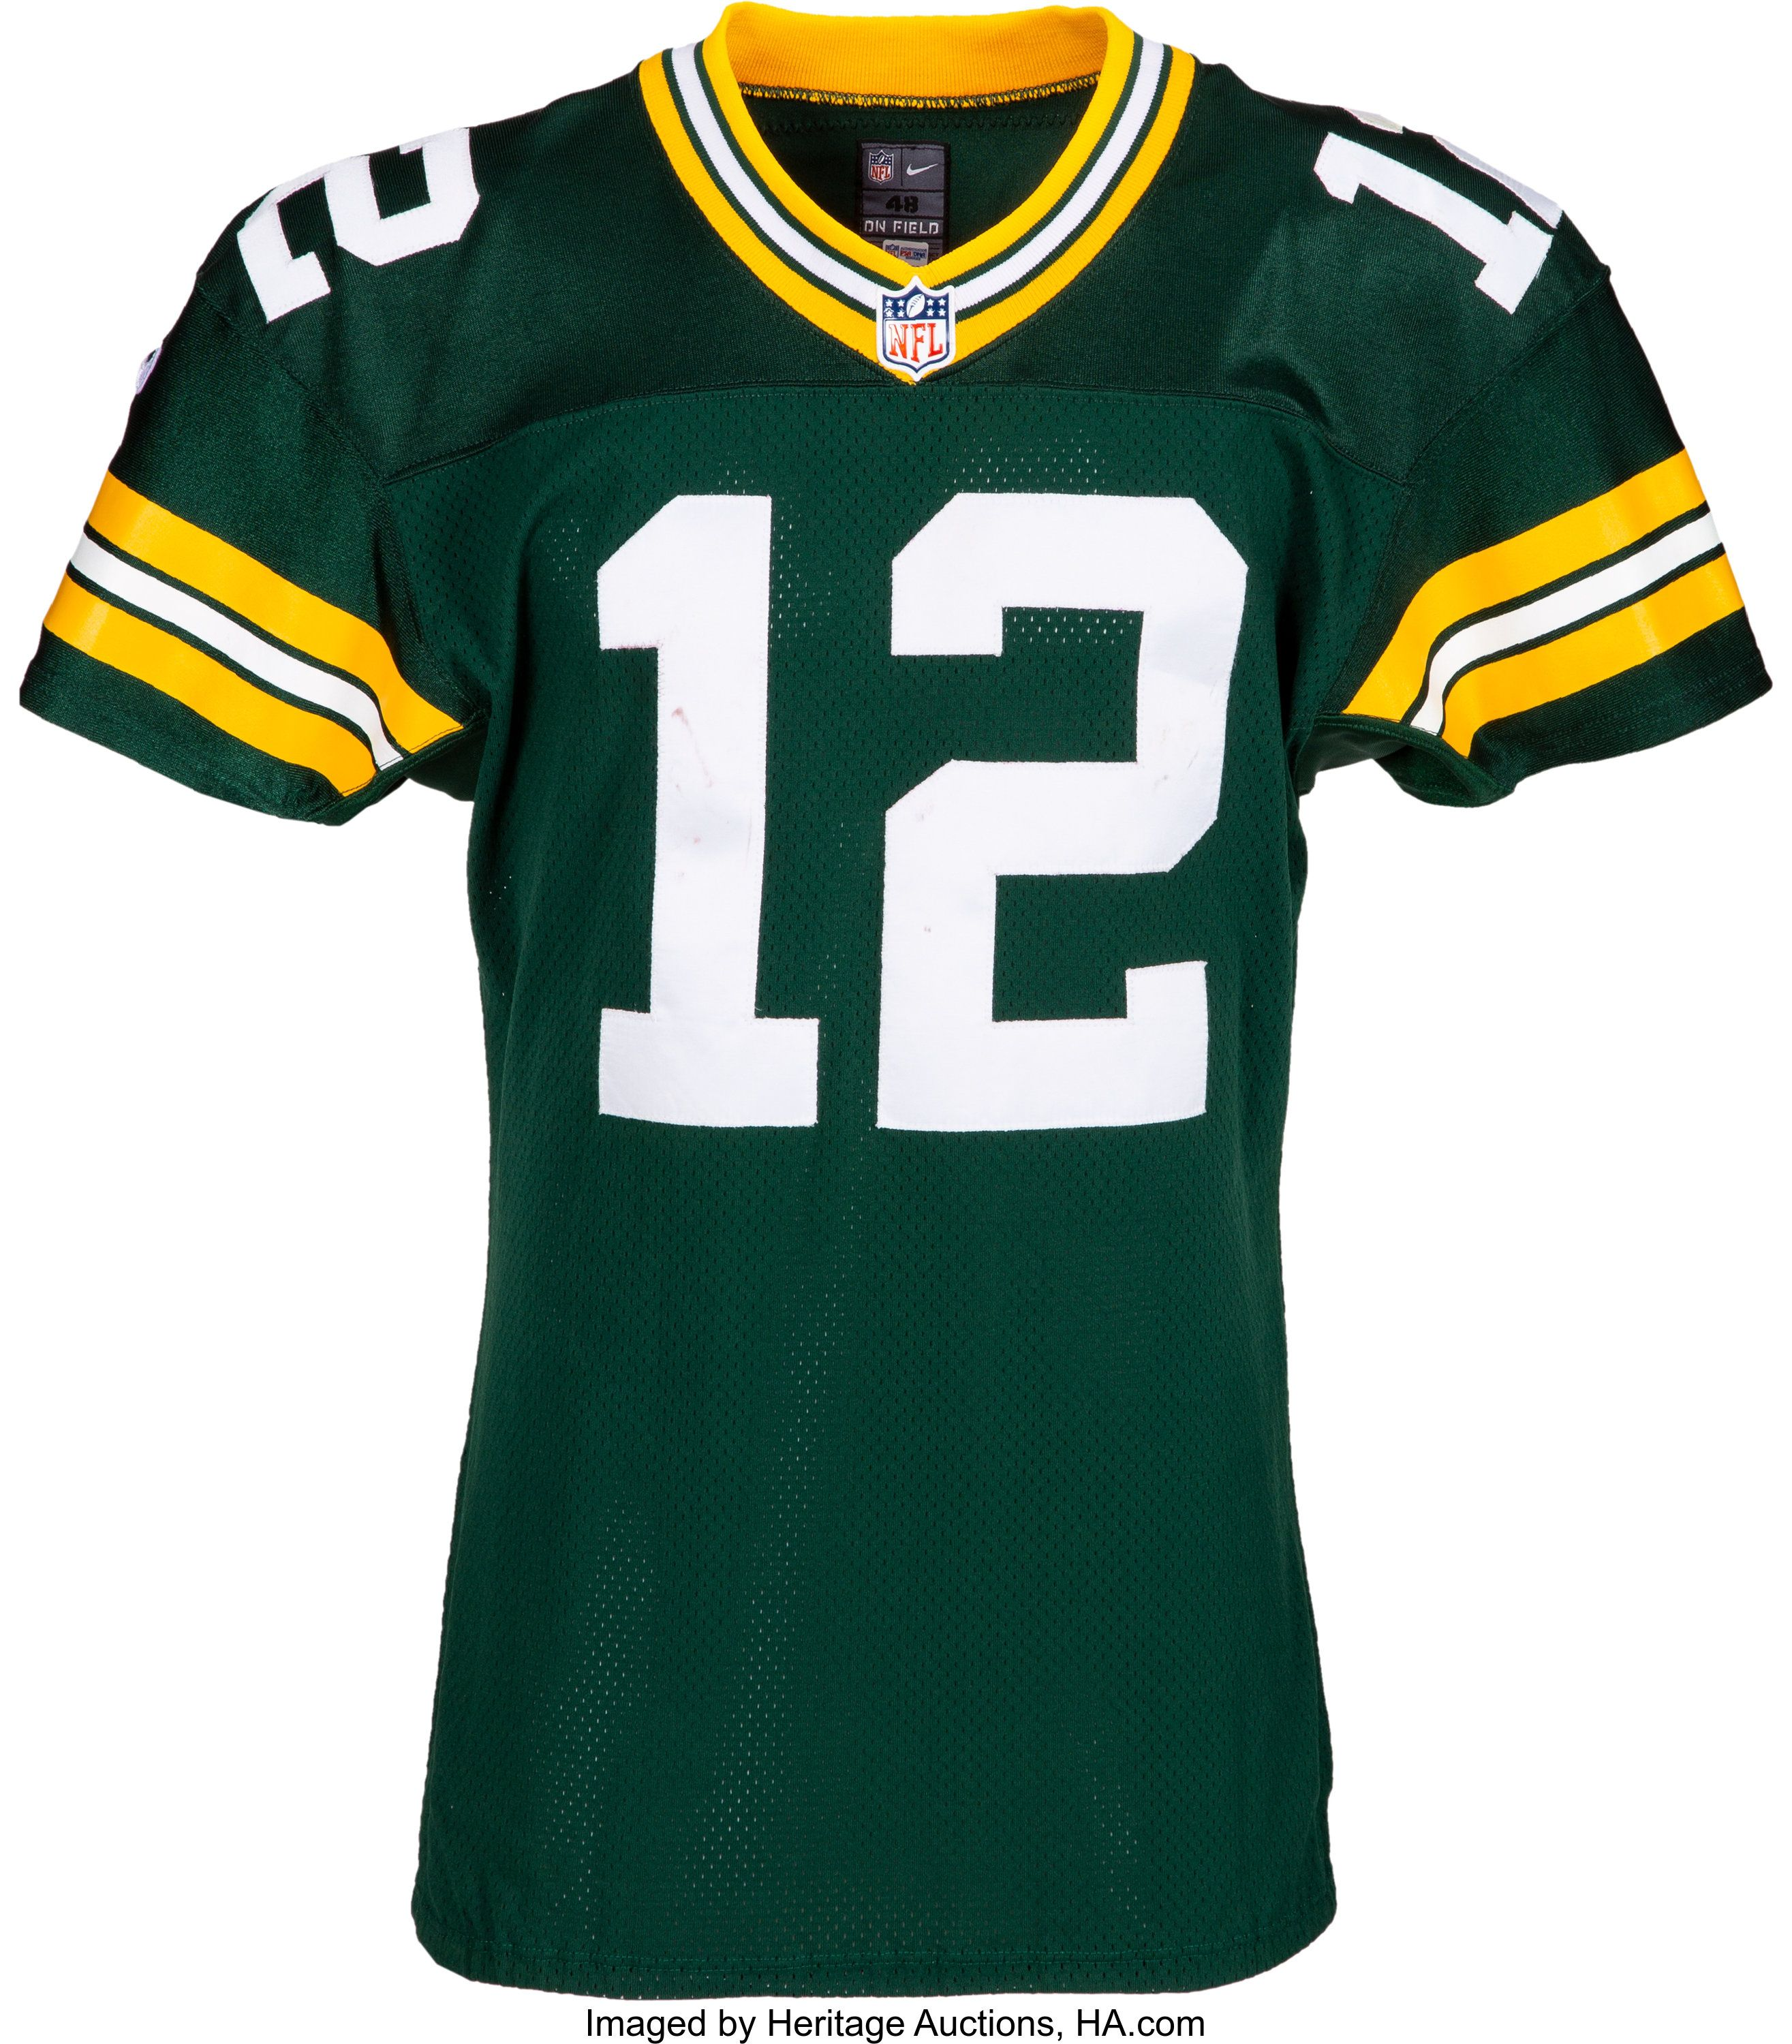 World S Largest Collectibles Auctioneer Green Bay Packers Jerseys Game Wear Green Bay Packers